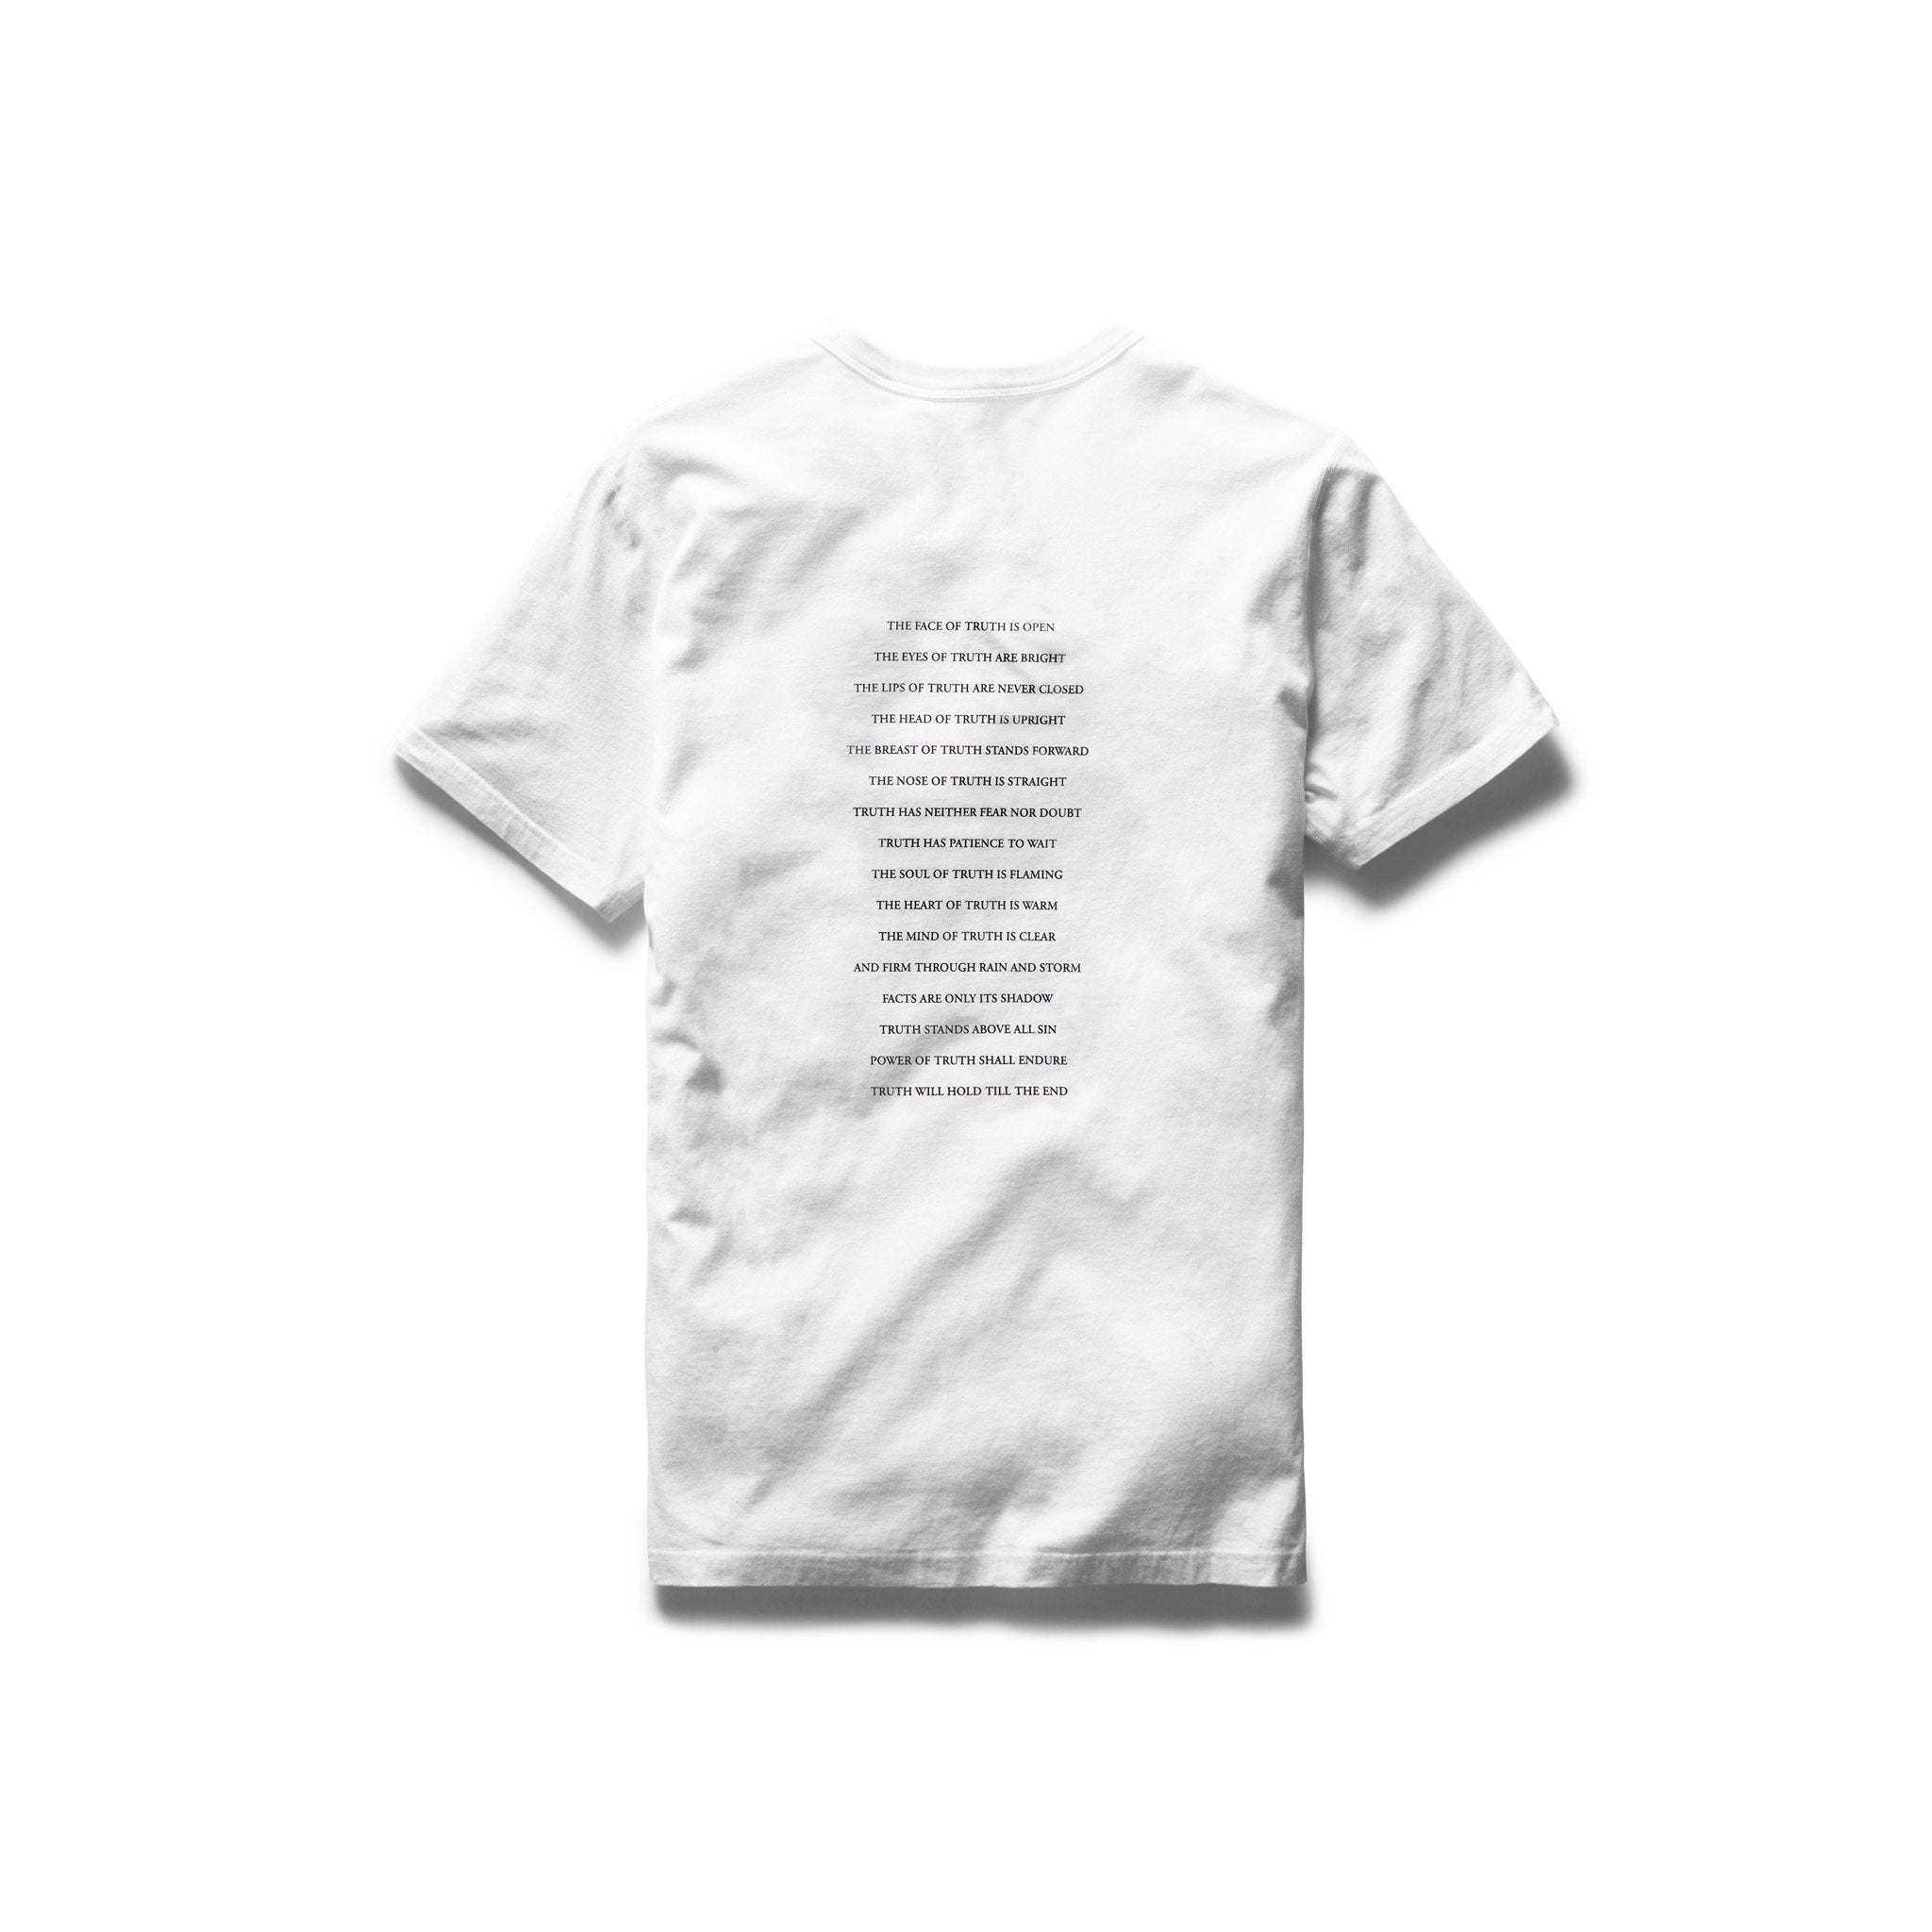 REIGNING CHAMP M'S T-SHIRTS MUHAMMAD ALI TRUTH T-SHIRT